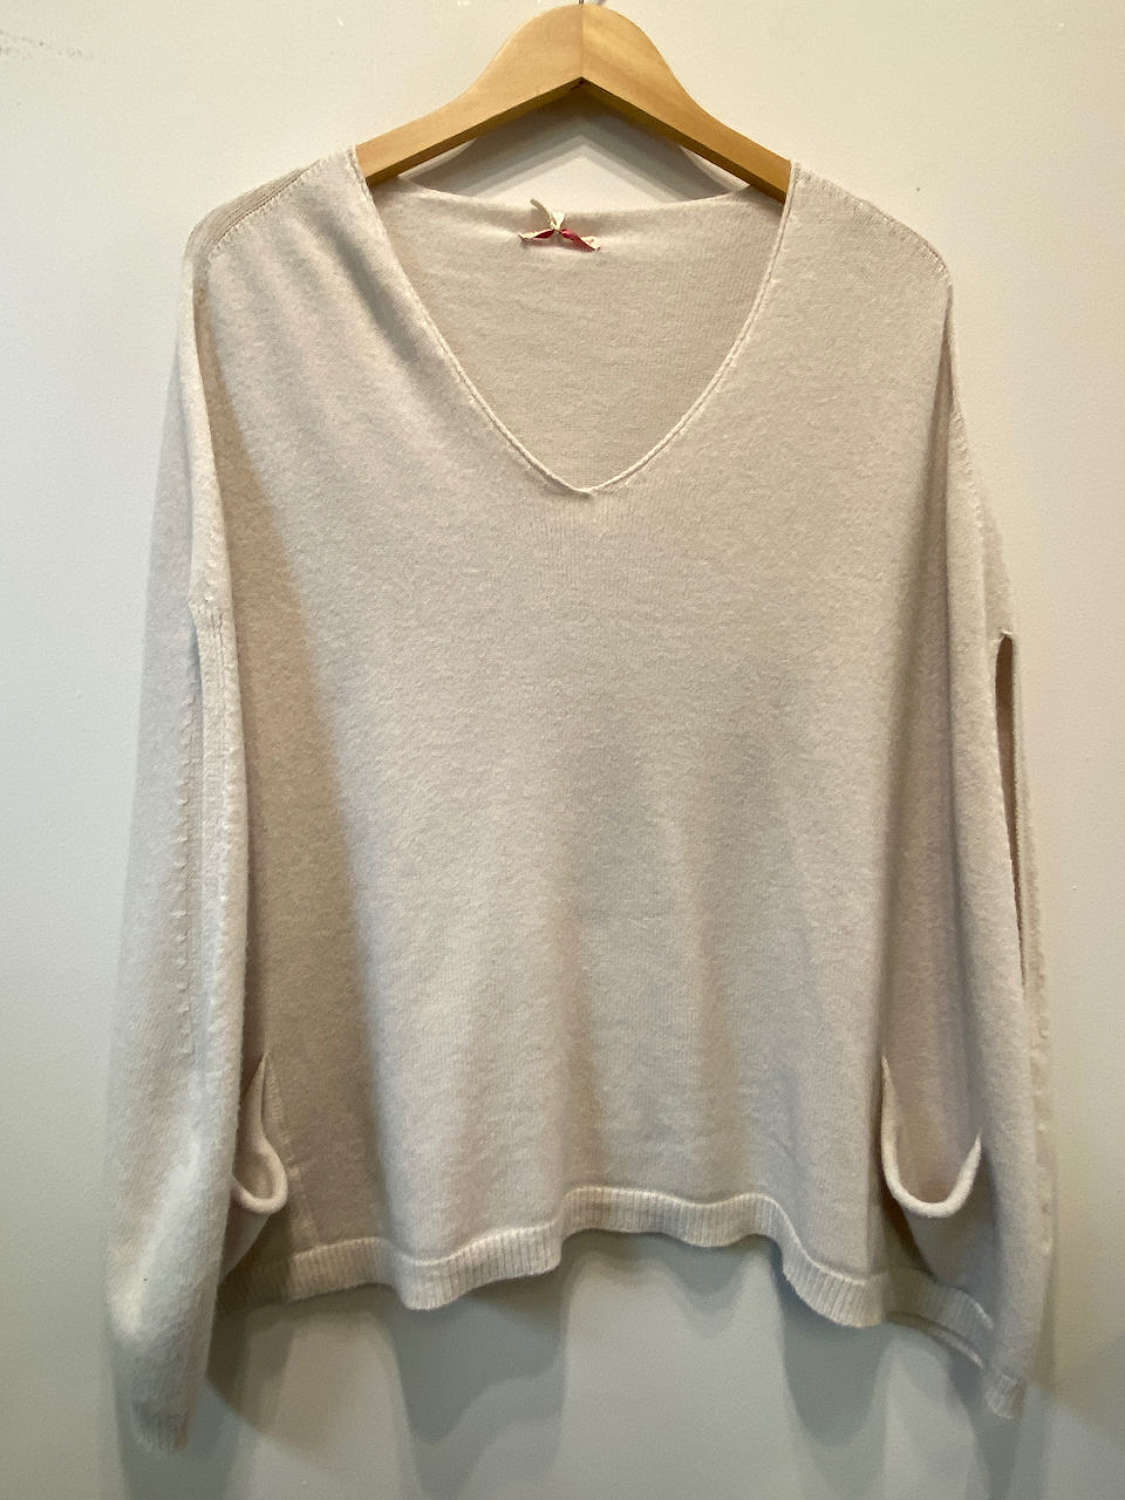 Super soft knitwear poncho in winter white